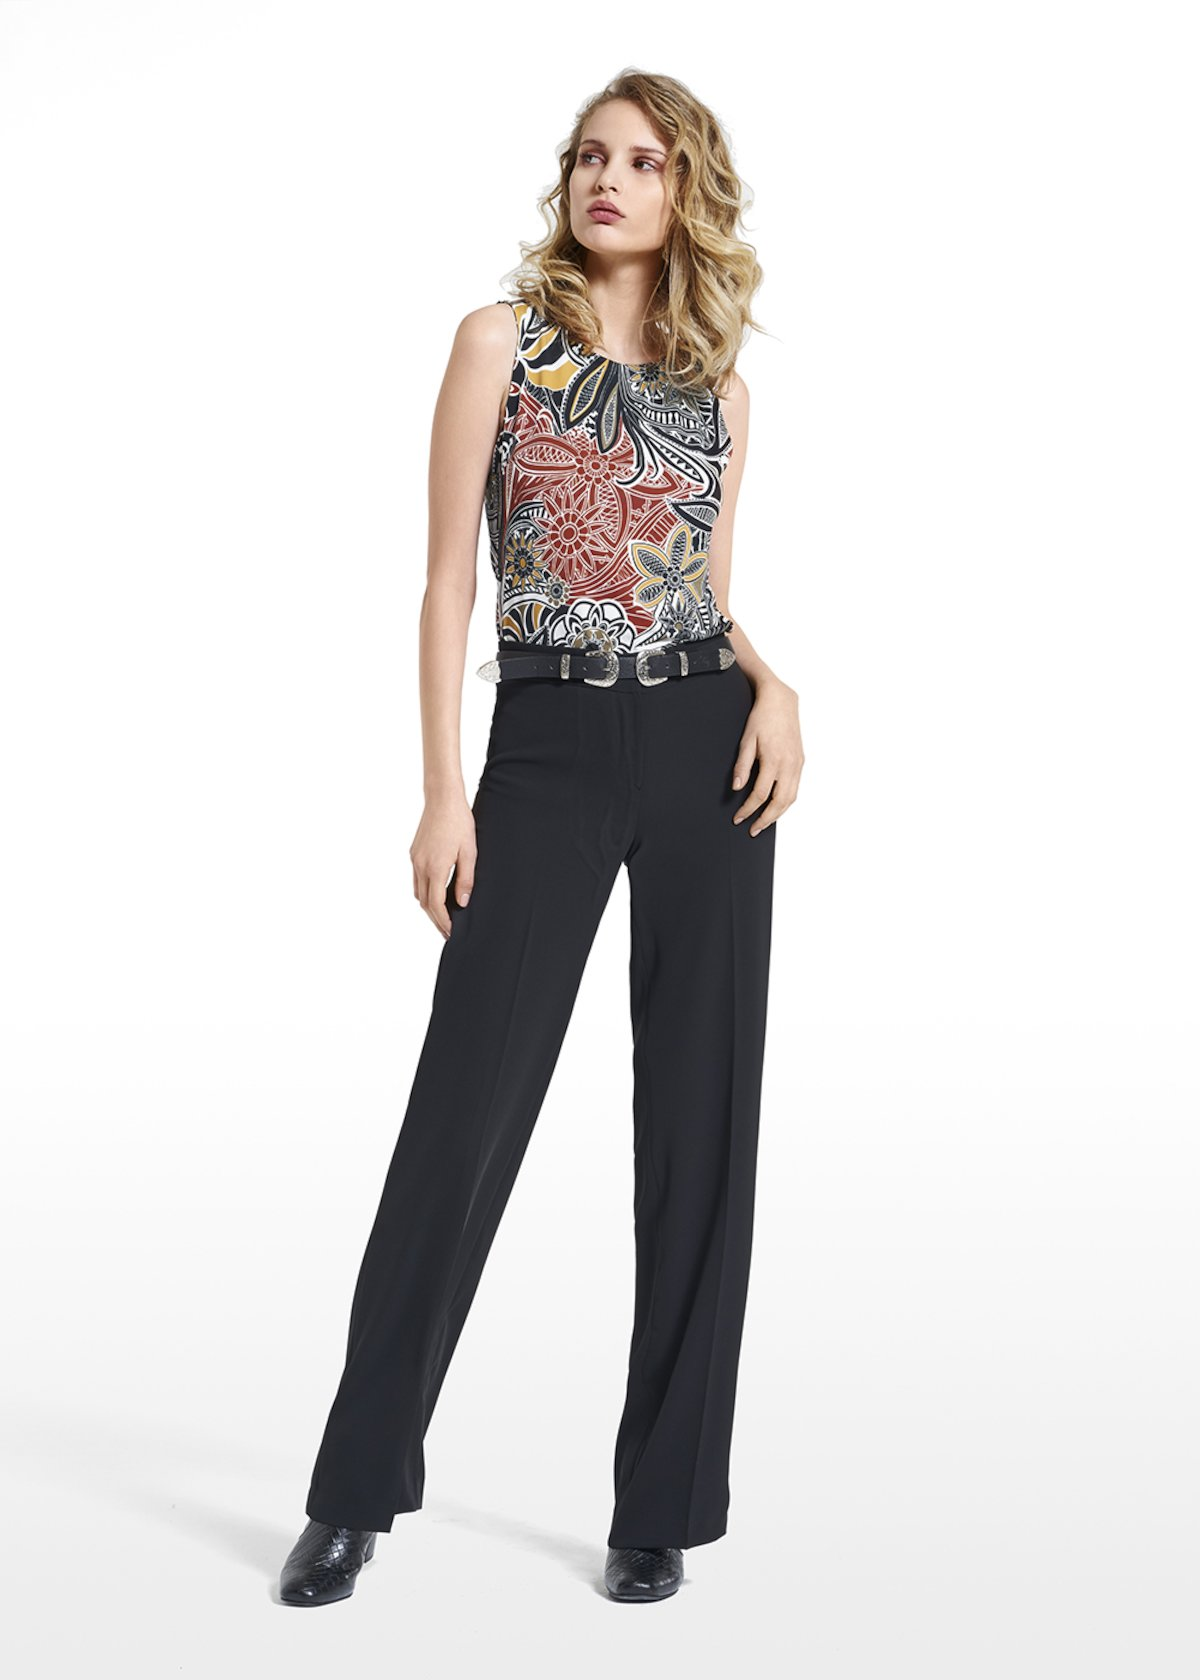 Pants Priamo in cady crêpe fabric with cuff at the bottom - Black - Woman - Category image